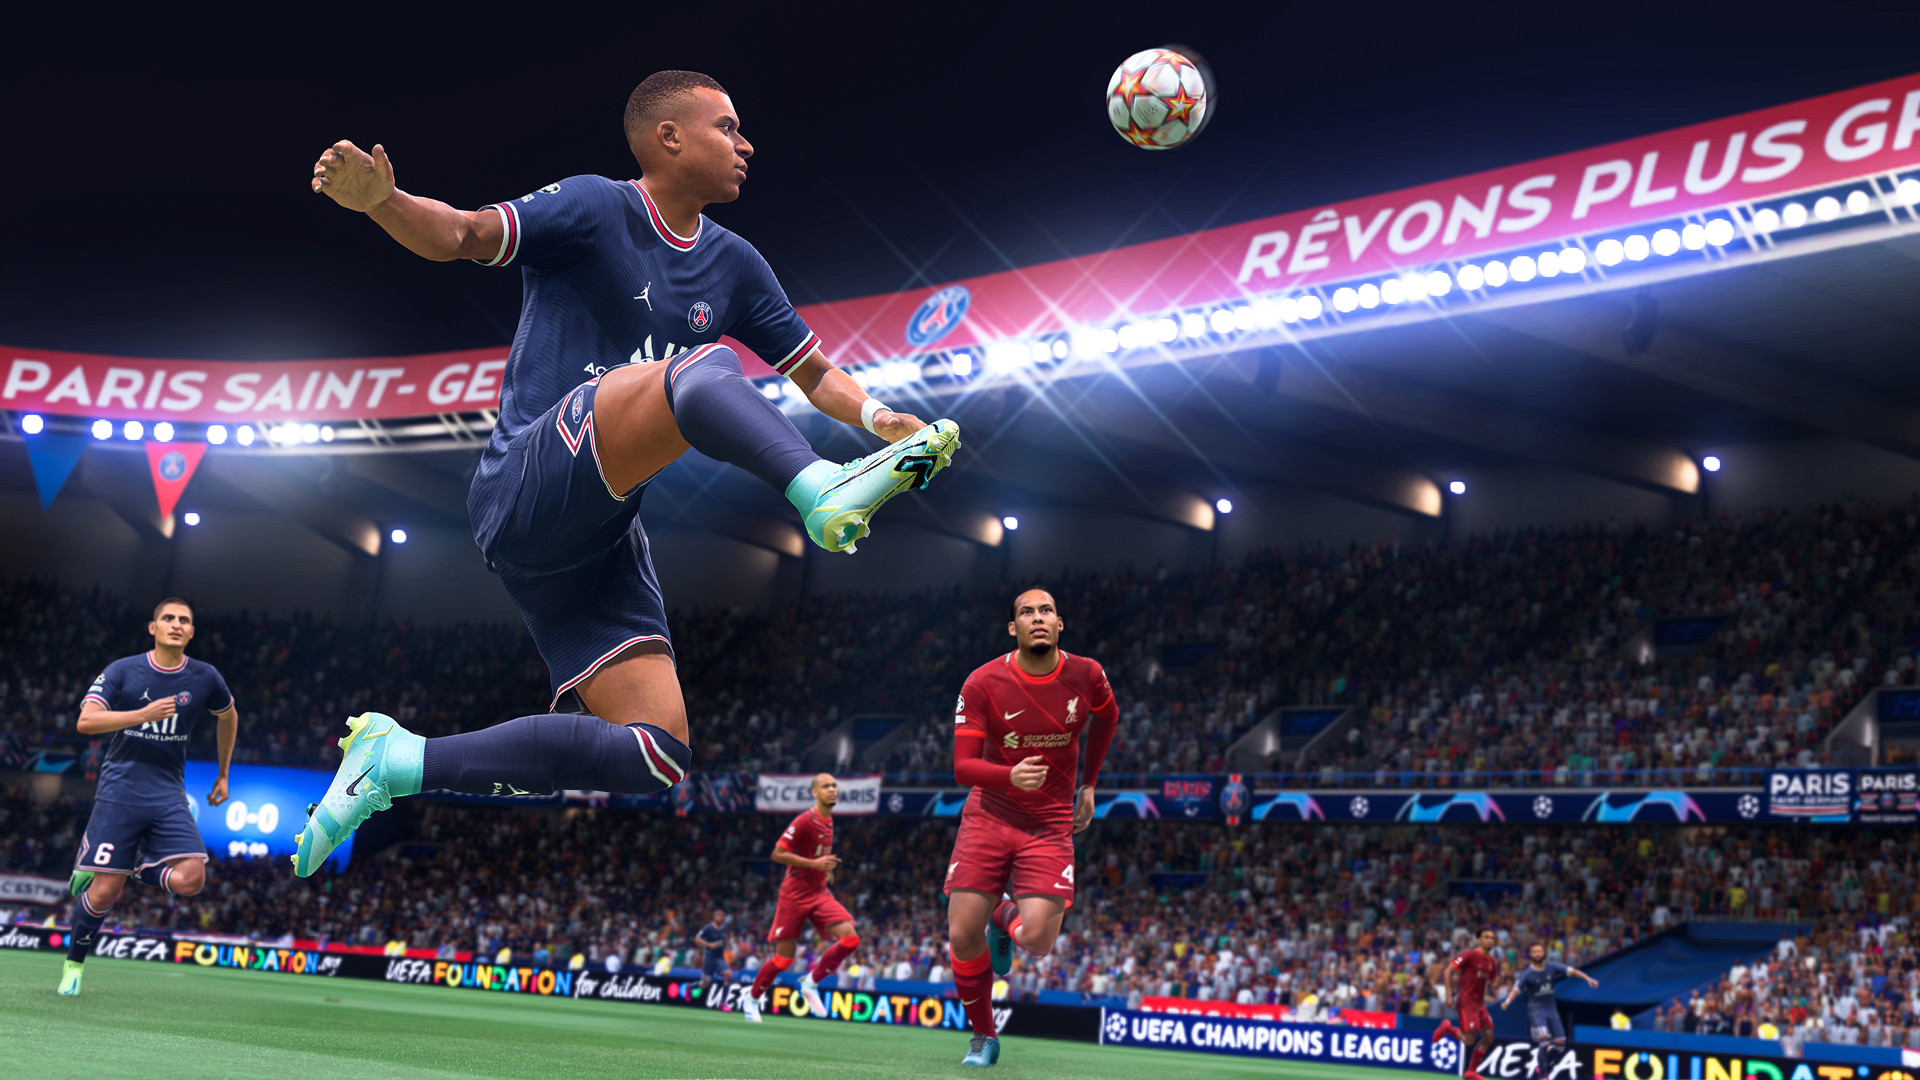 kylian mbappe controlling the ball in the air in fifa 22